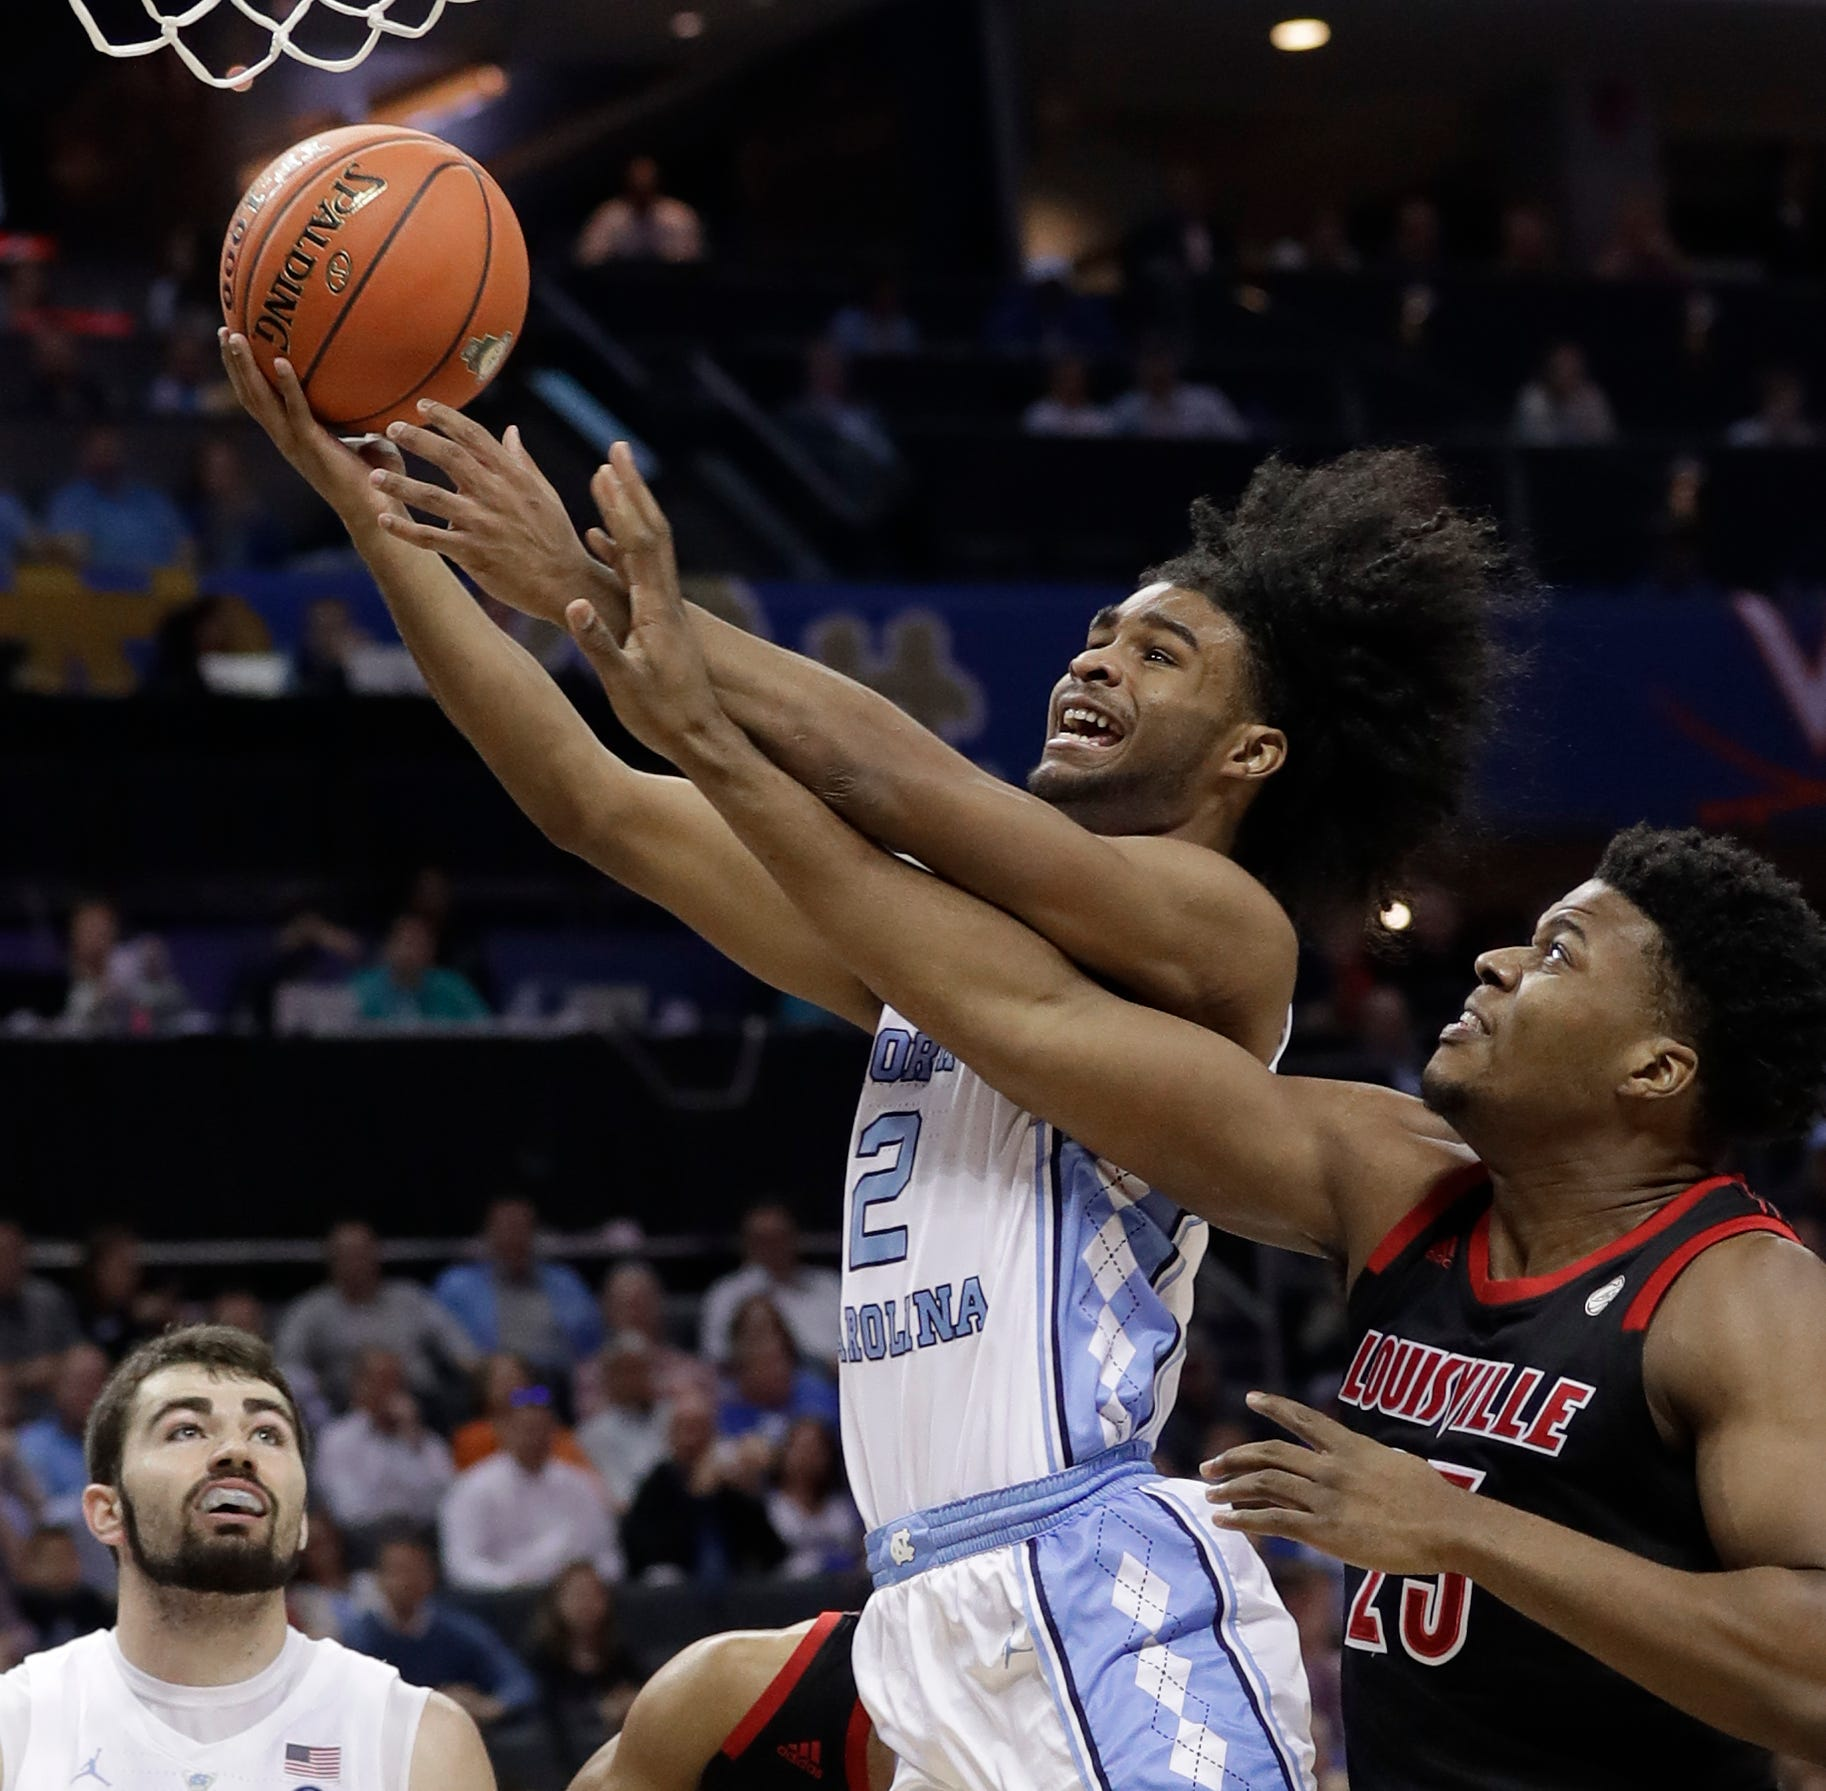 Louisville ousted by North Carolina in ACC Tournament quarterfinal